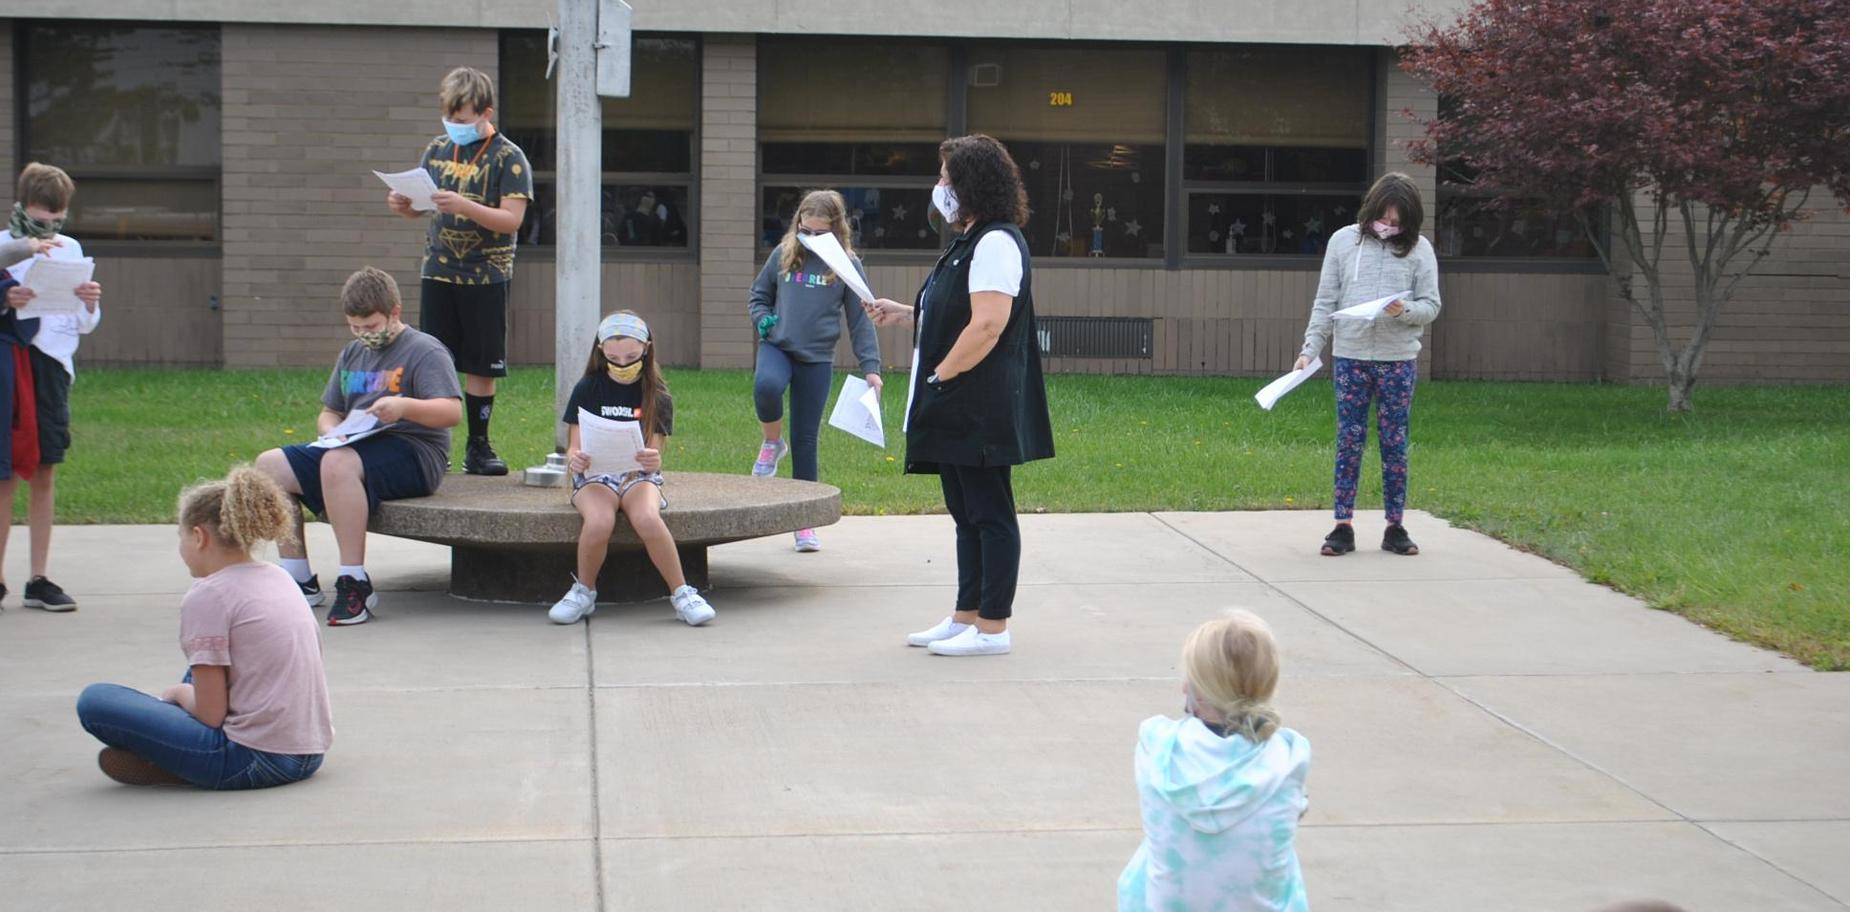 Students doing an outdoor play